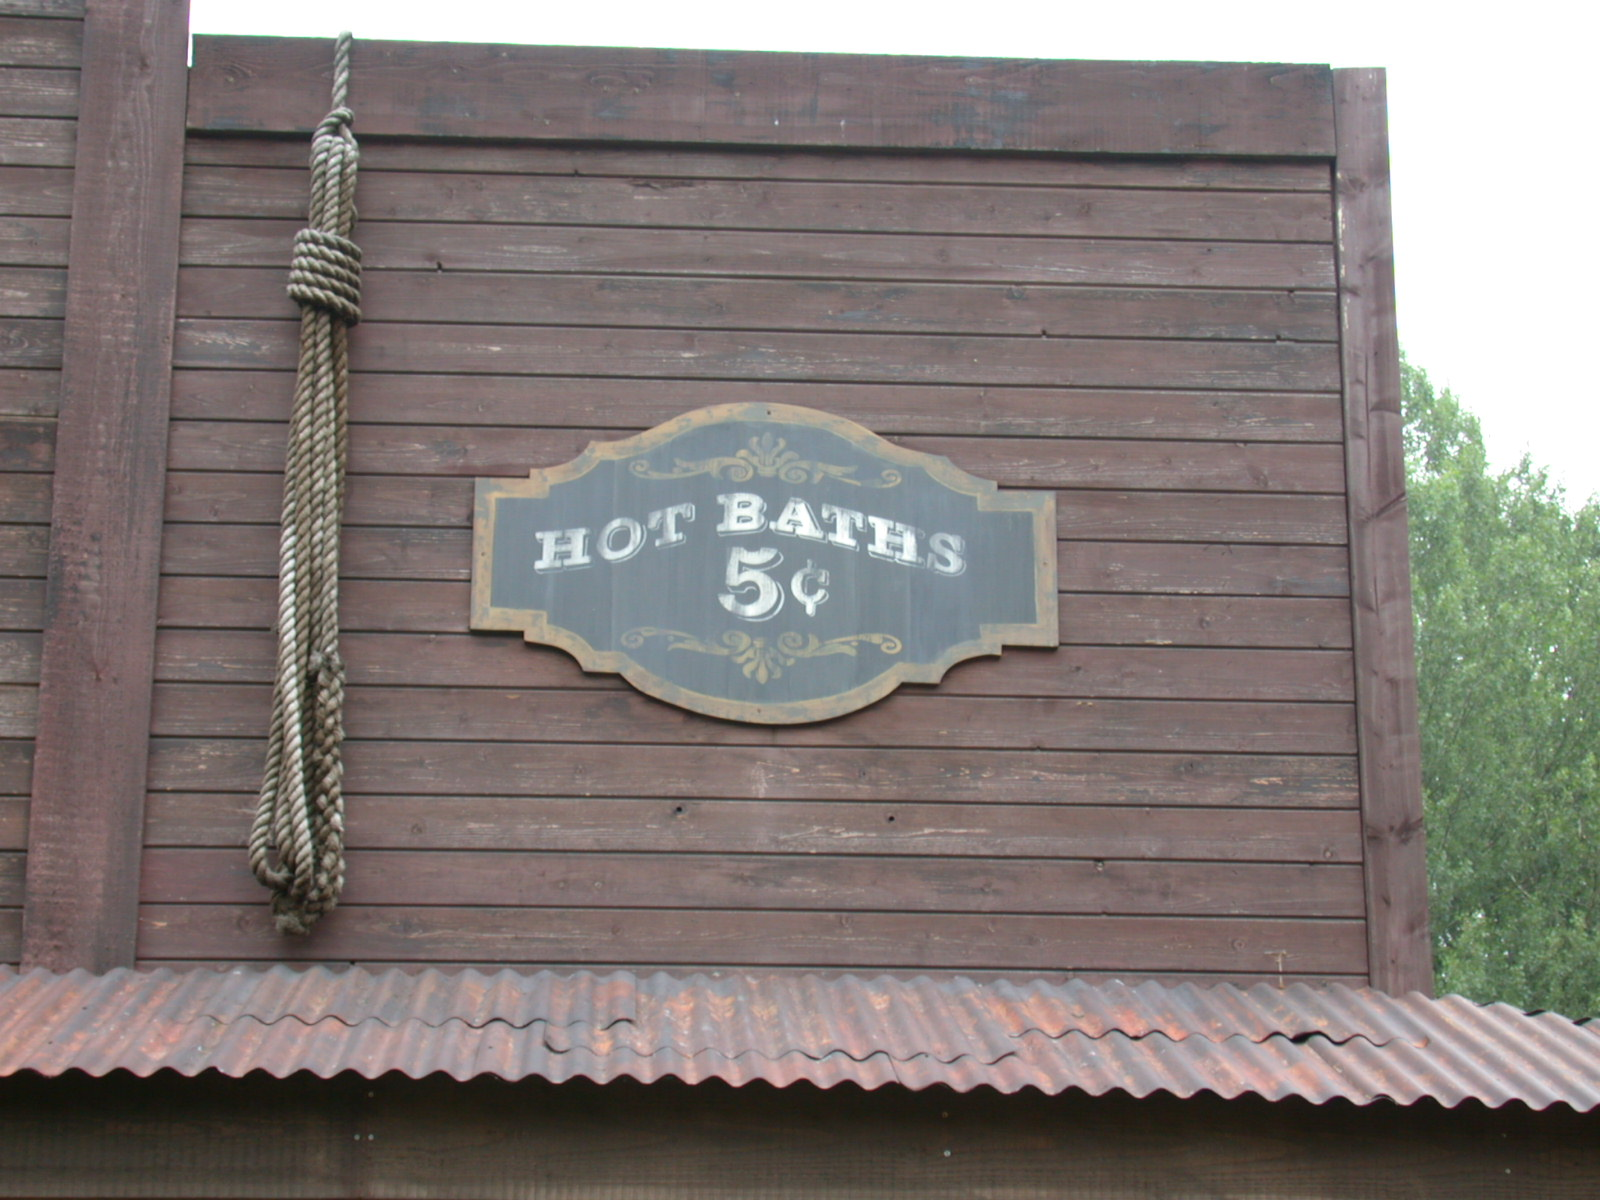 objects signs border ranch wood western dollarcent cent dollar scripts typography hot baths walls textures rope planks image